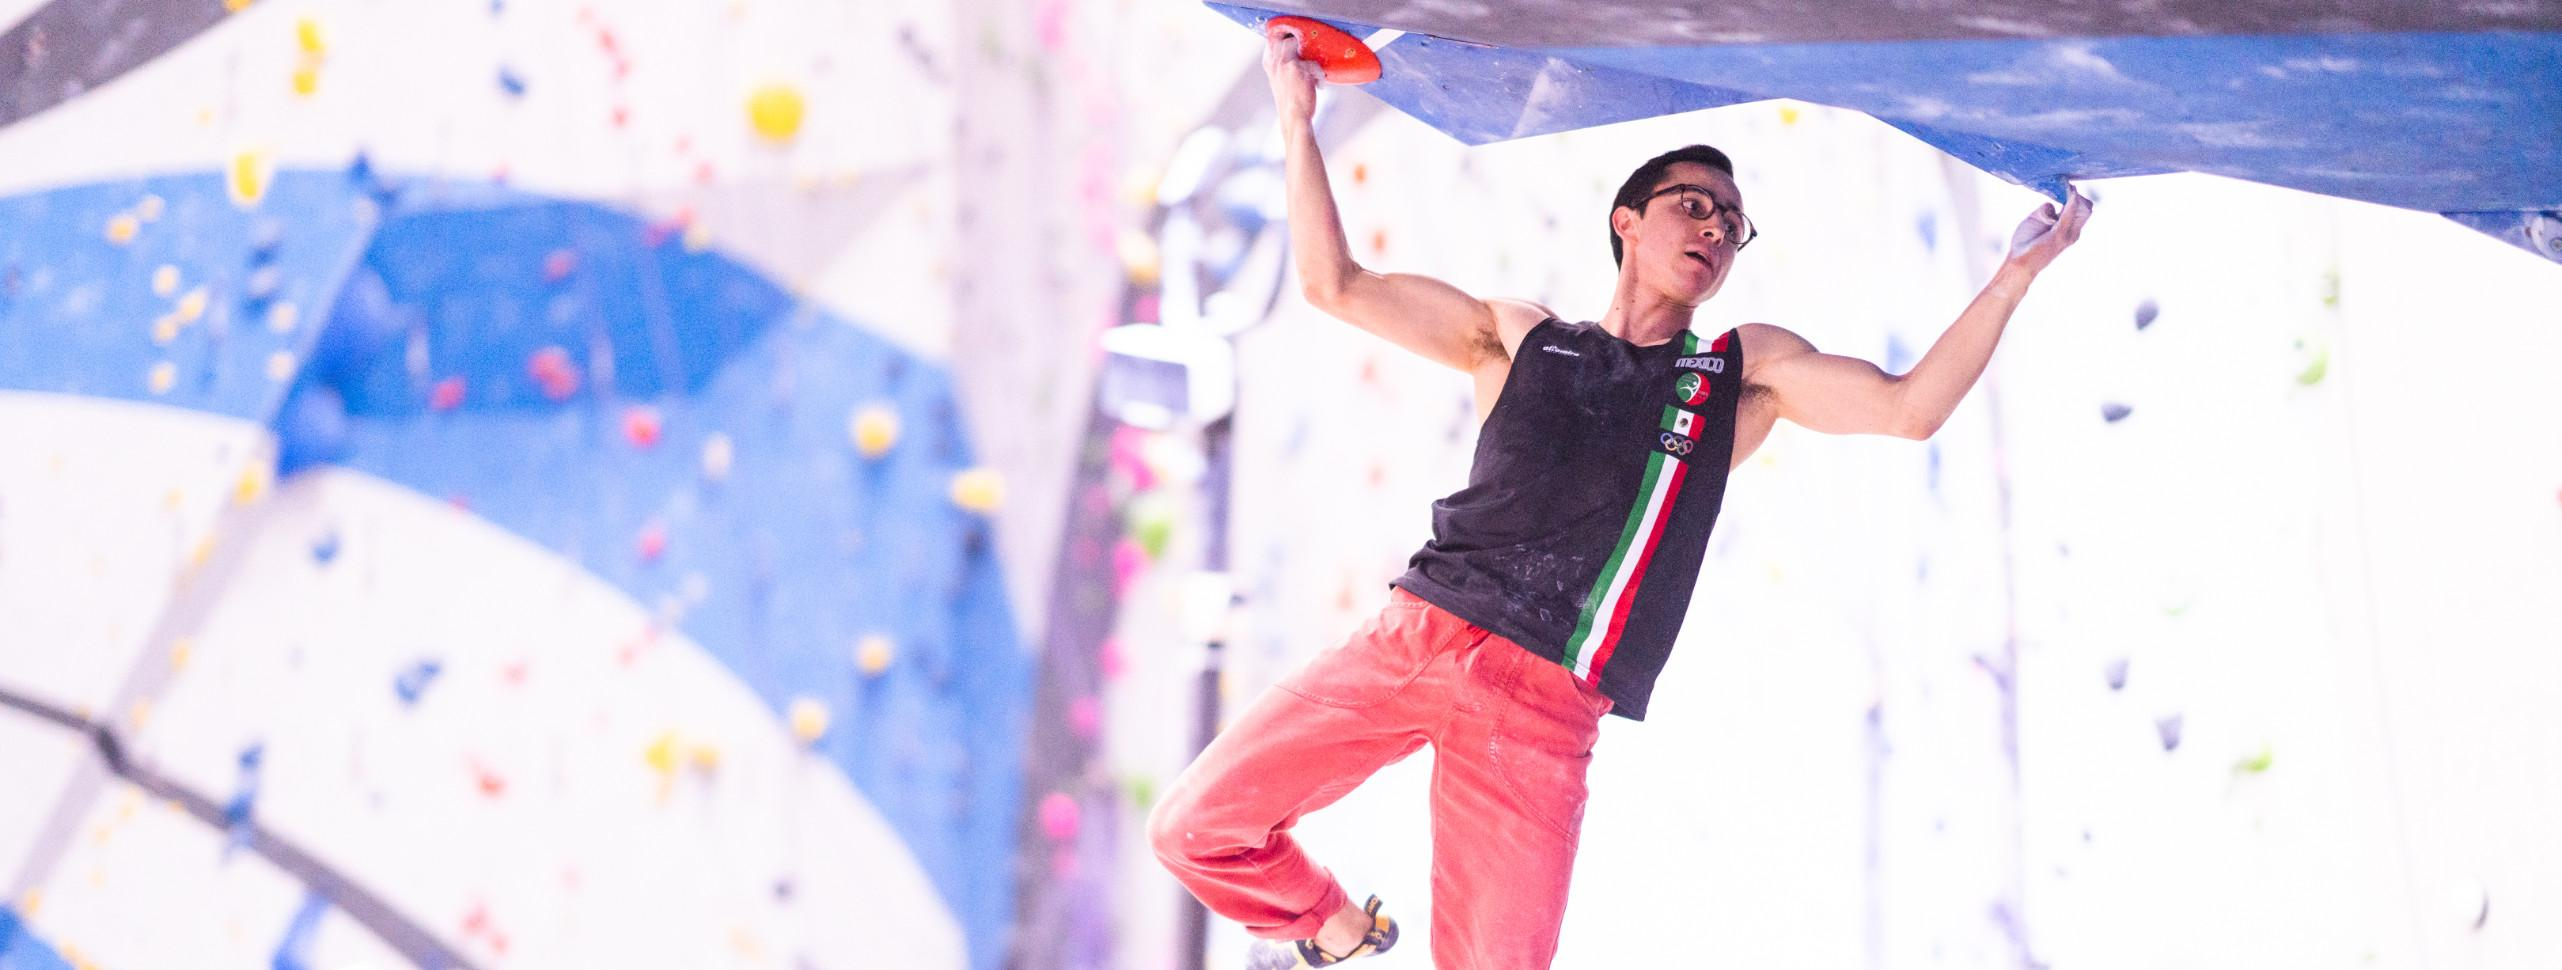 SPORT CLIMBING TO DEBUT AT PAN AMERICAN GAMES SANTIAGO 2023